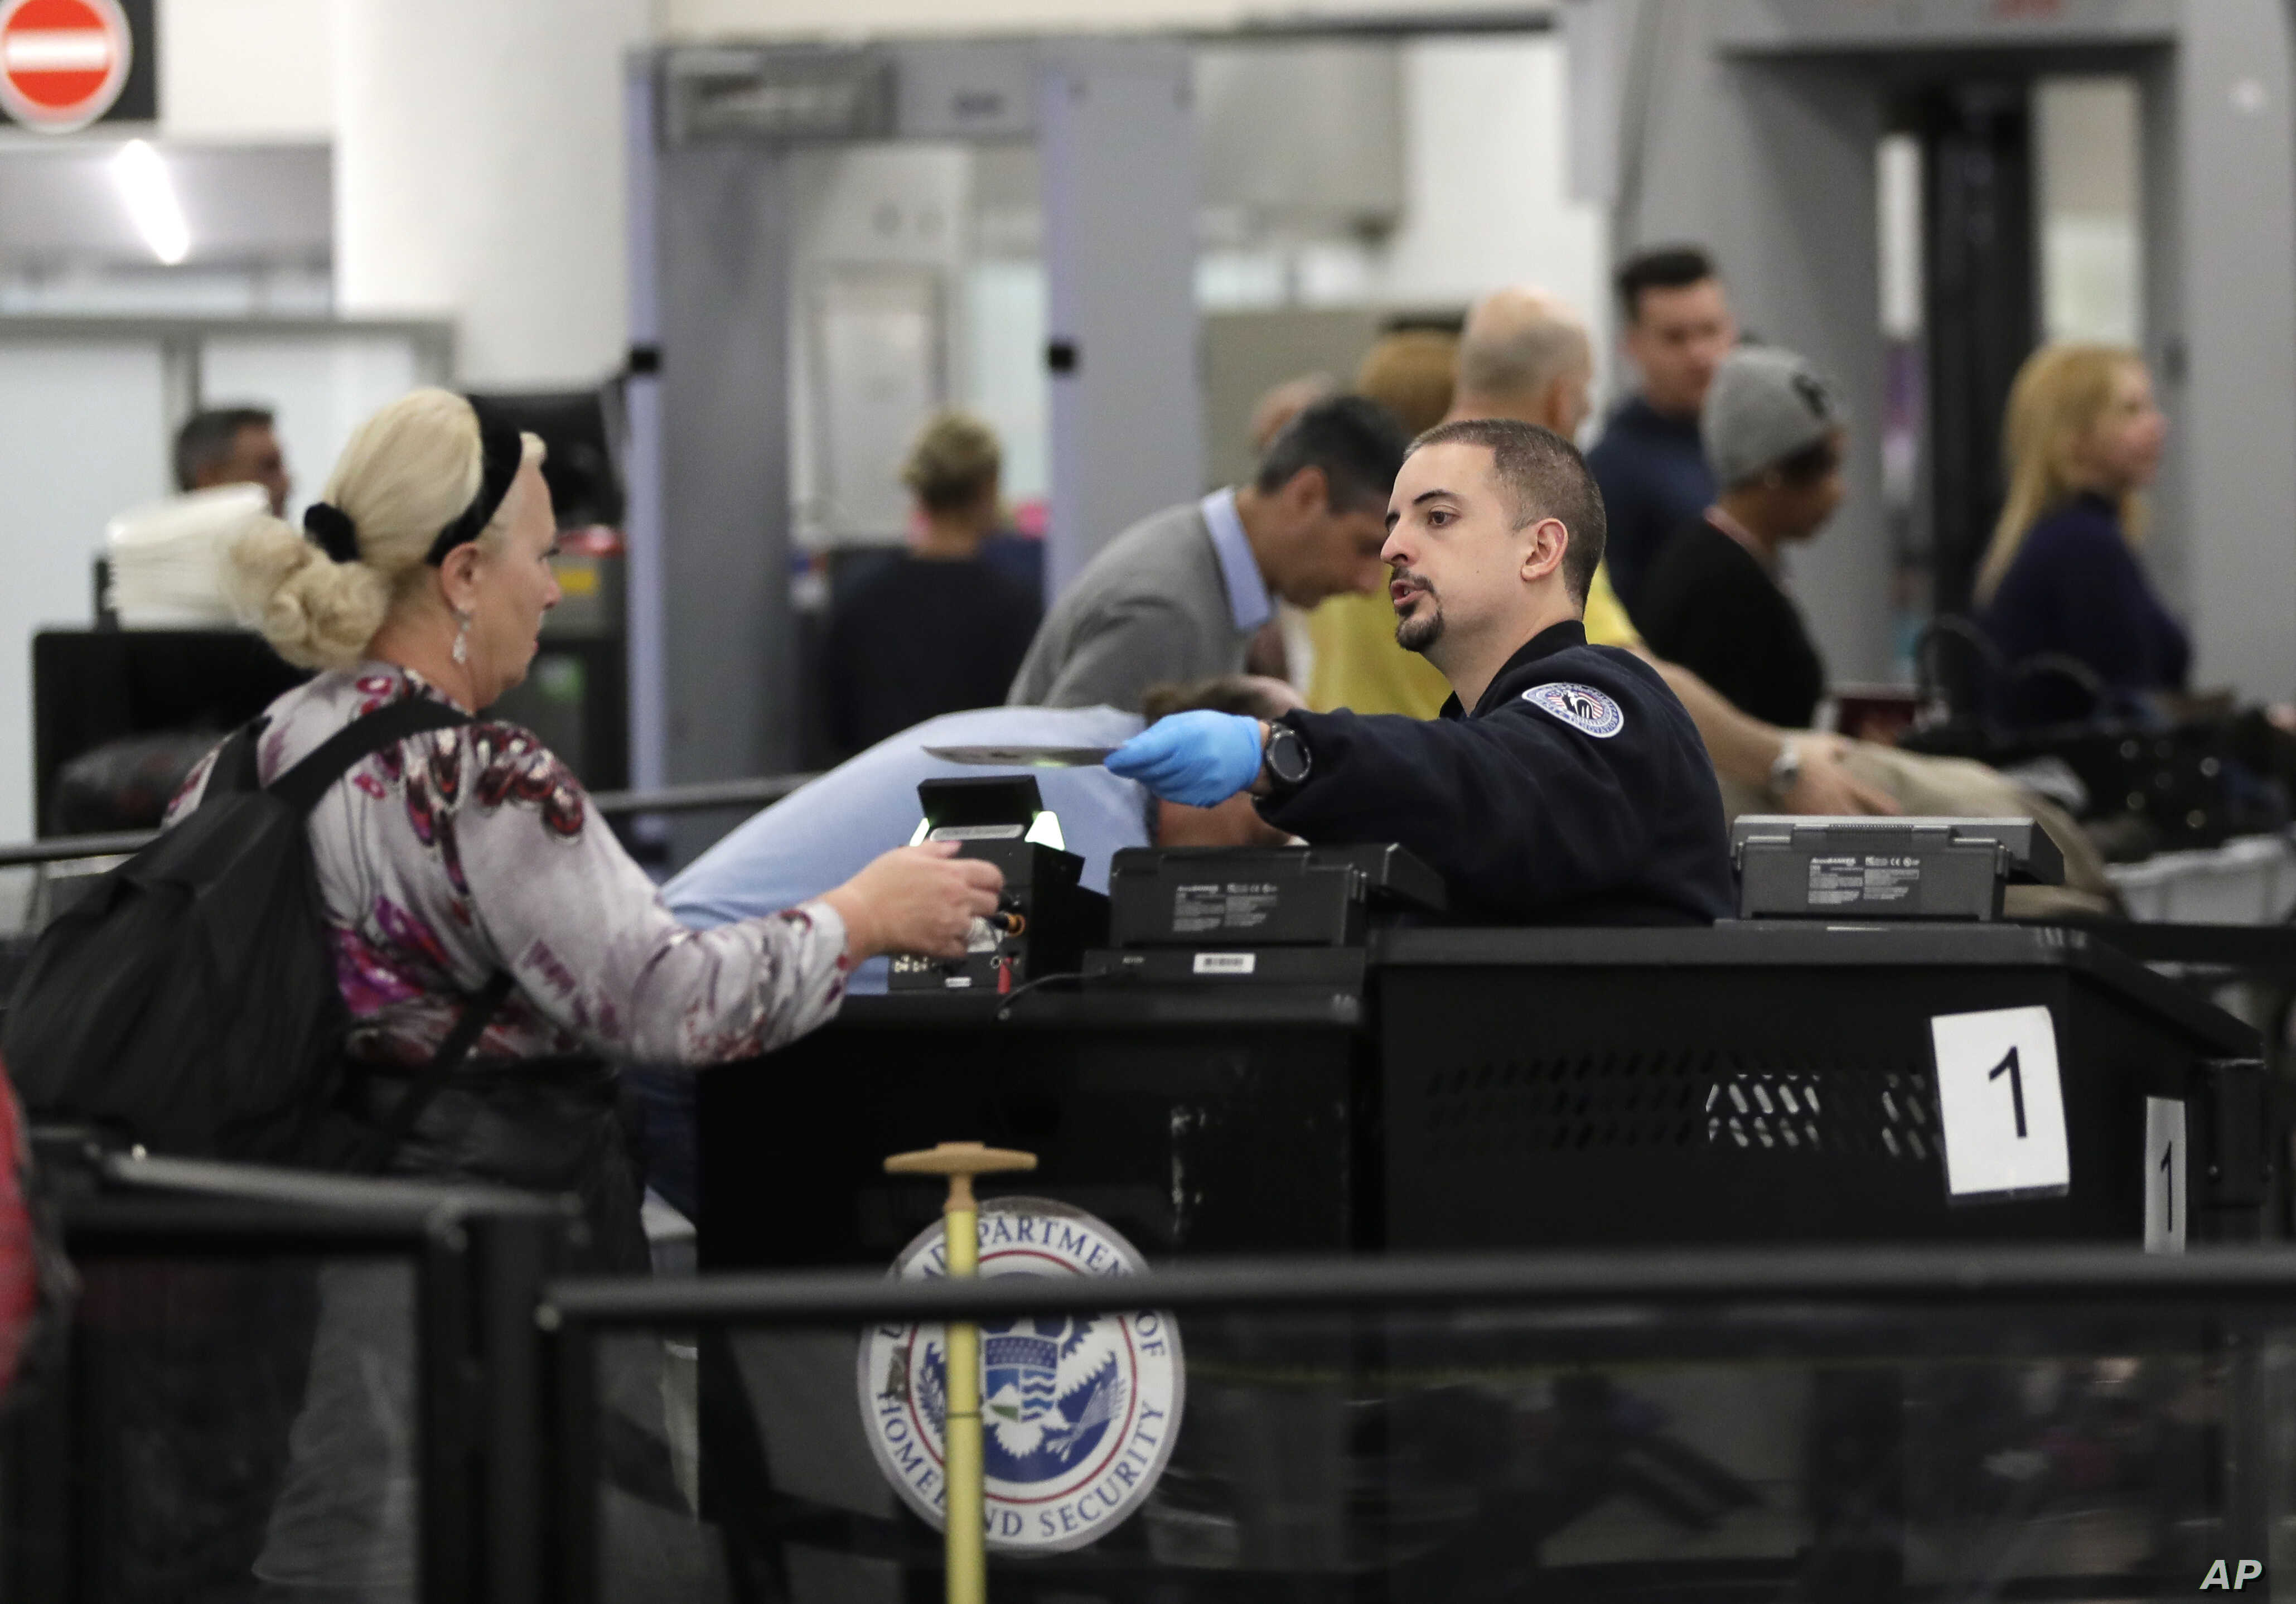 A Transportation Security Administration official works at the entrance to Concourse G at Miami International Airport in Miami, Jan. 11, 2019.